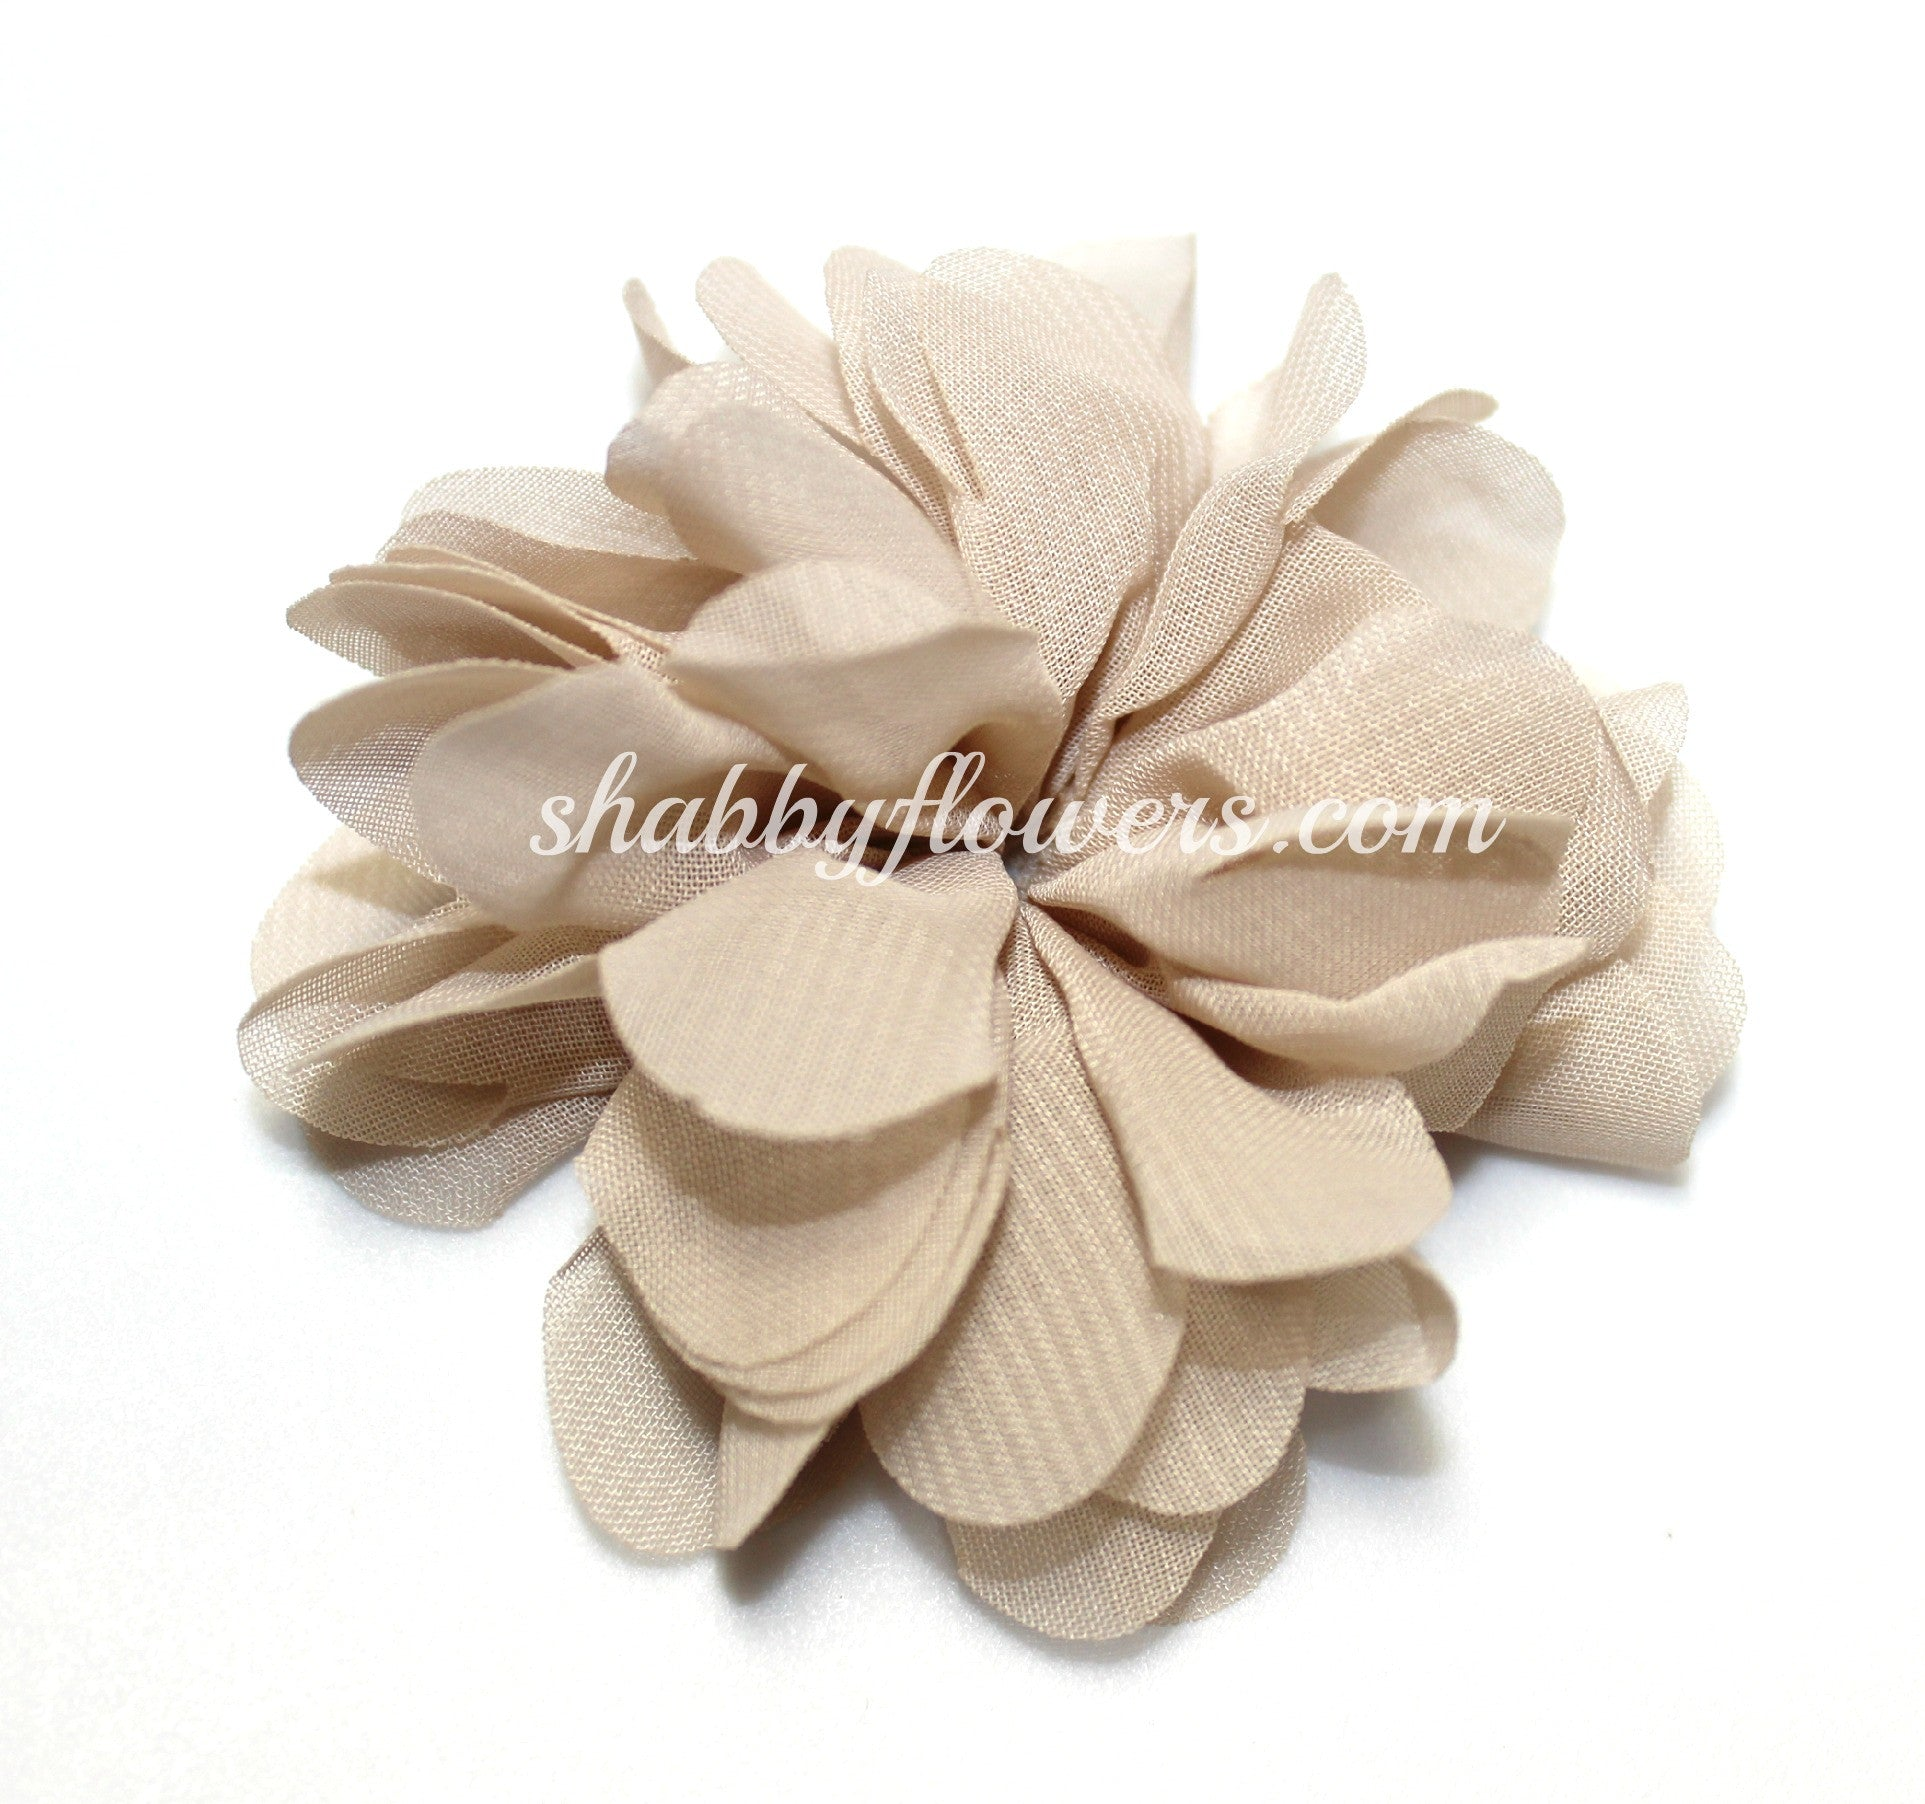 Scalloped Flower - Nude - shabbyflowers.com